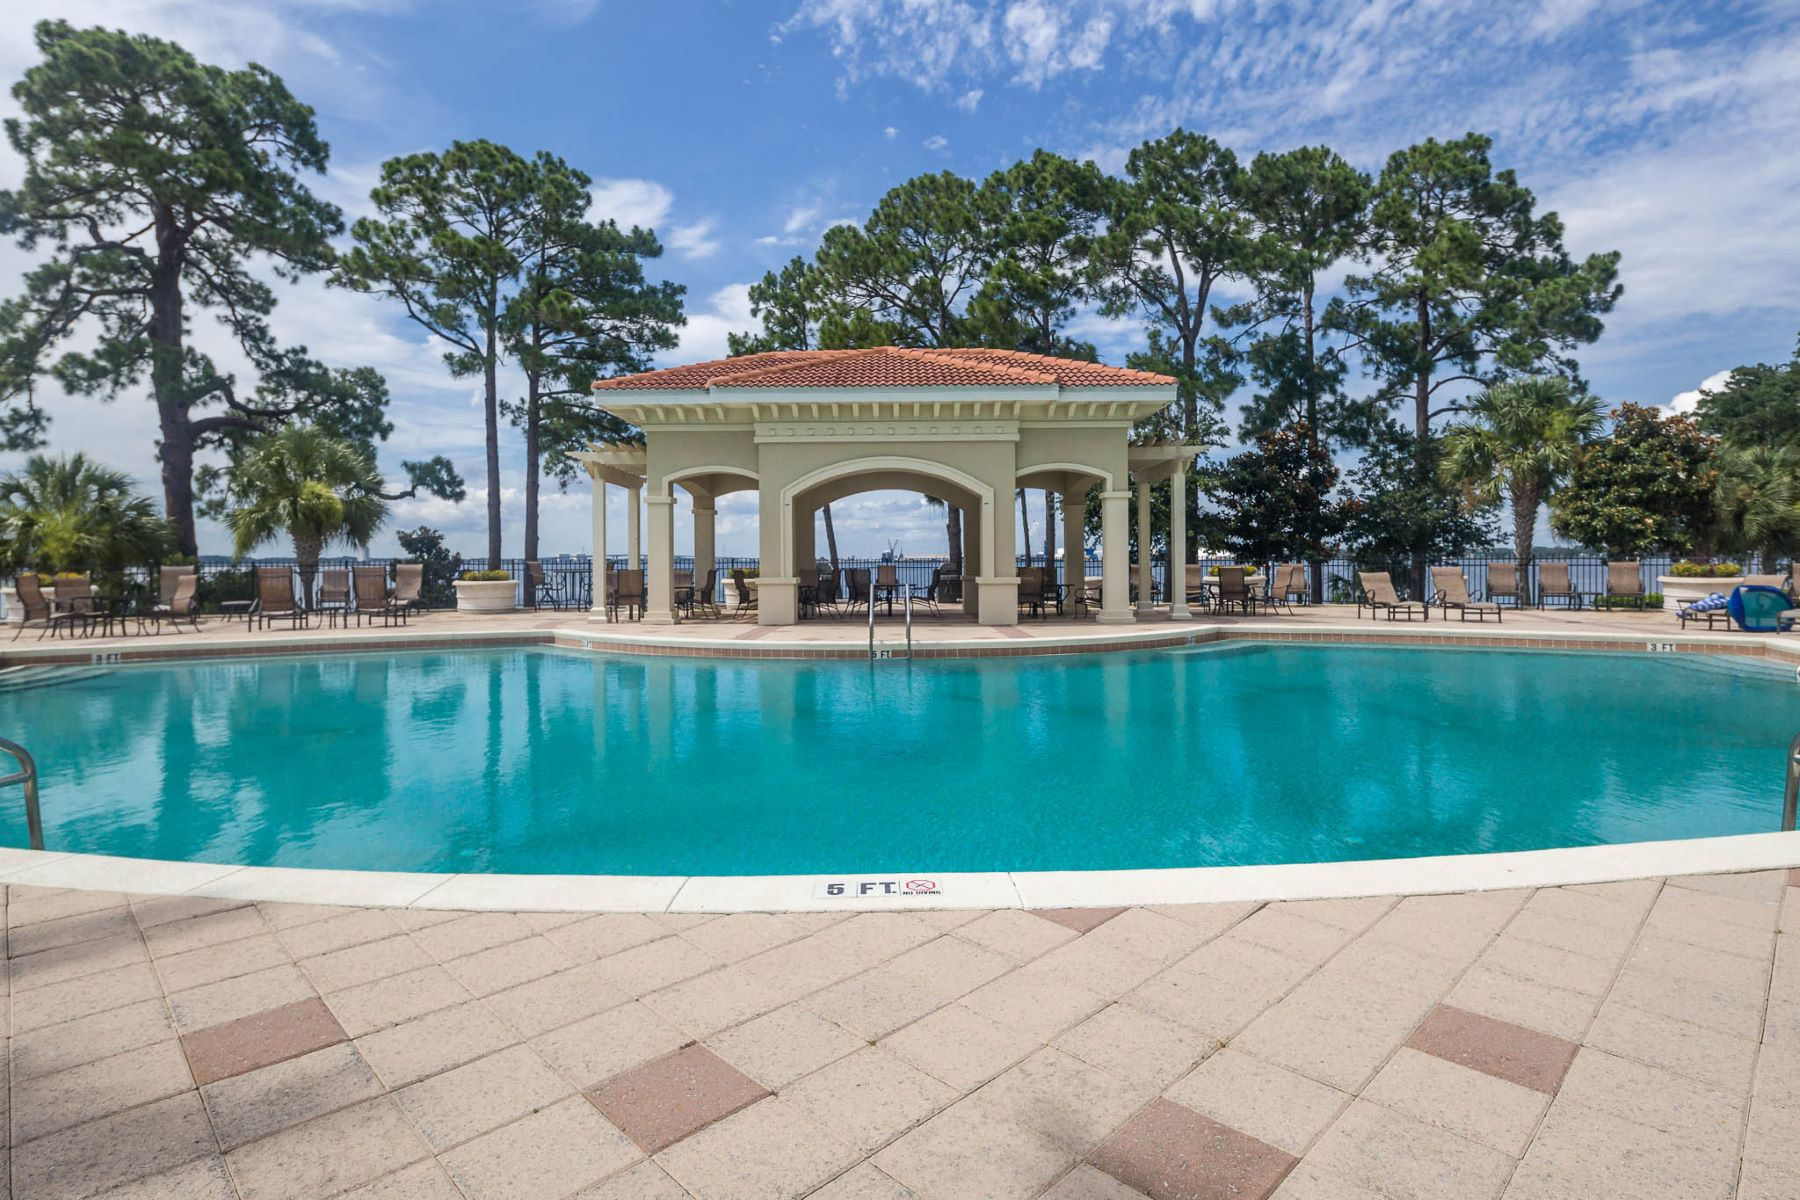 Condominio por un Venta en PREMIER WATERFRONT LIVING IN PRIVATE SETTING 2400 Grandiflora Boulevard E209 Magnolia Bay Club, Panama City Beach, Florida, 32408 Estados Unidos